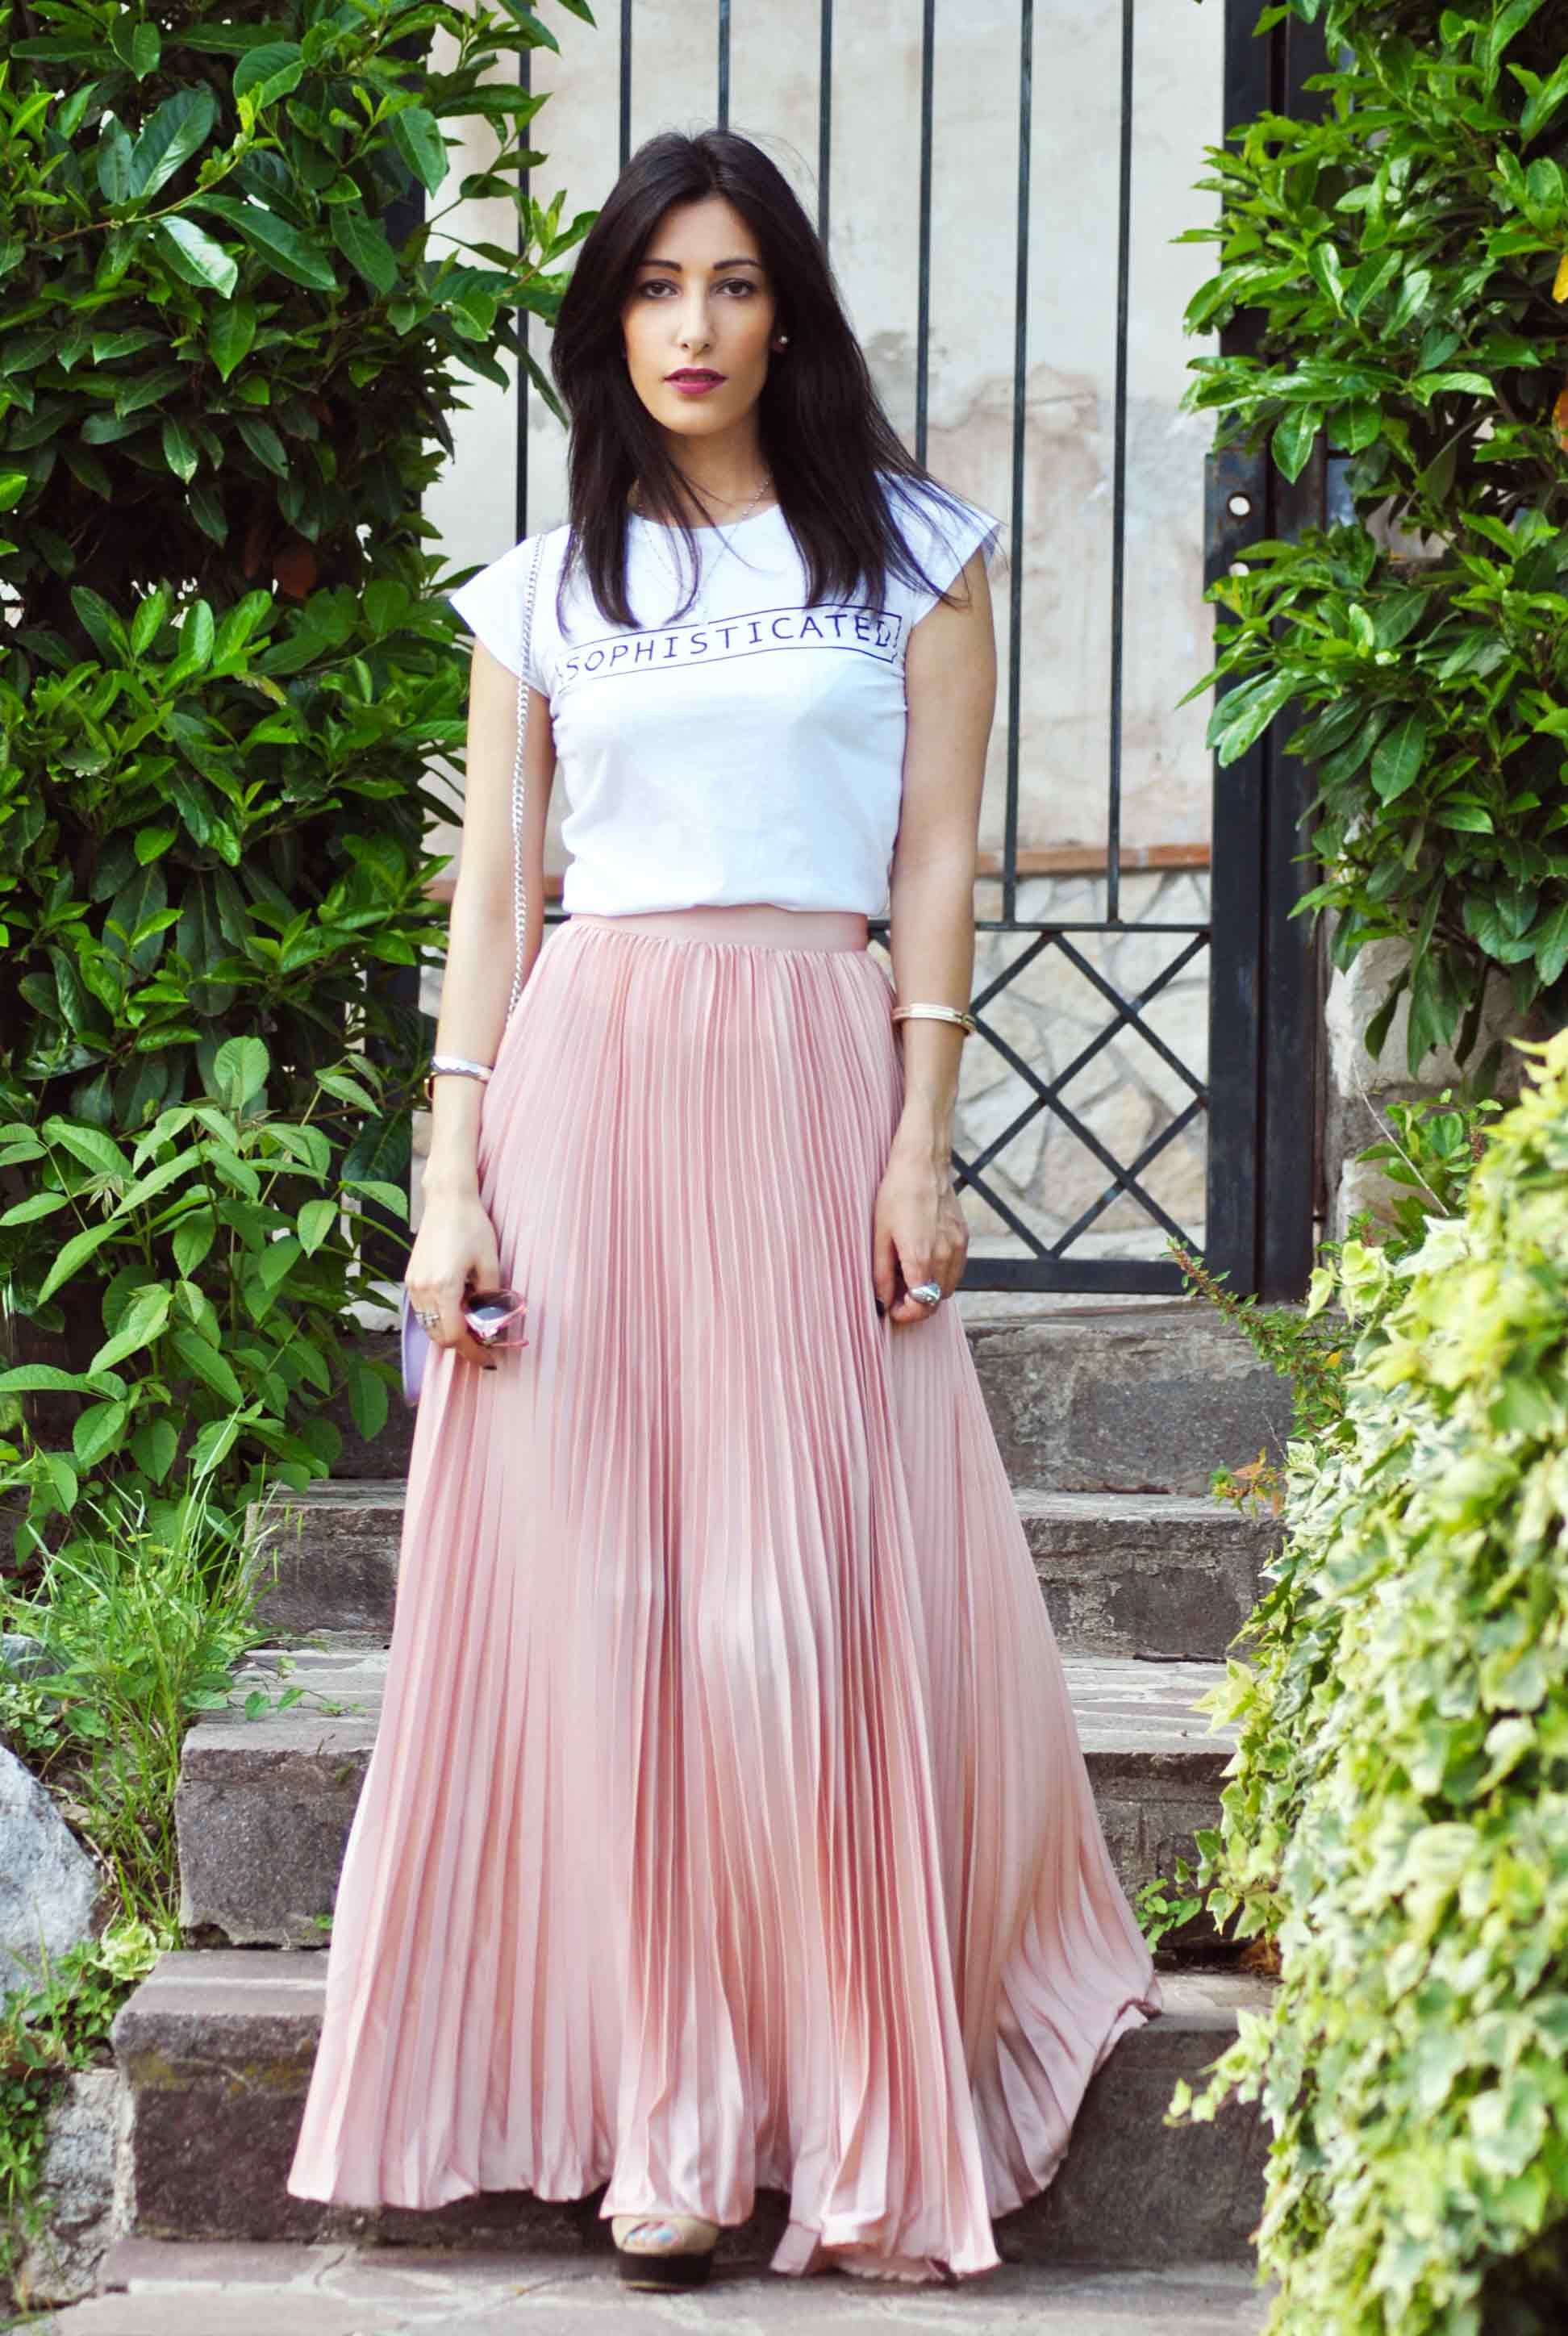 new product 18383 cd381 Gonna lunga plissettata, long pleated skirt, pink powder ...